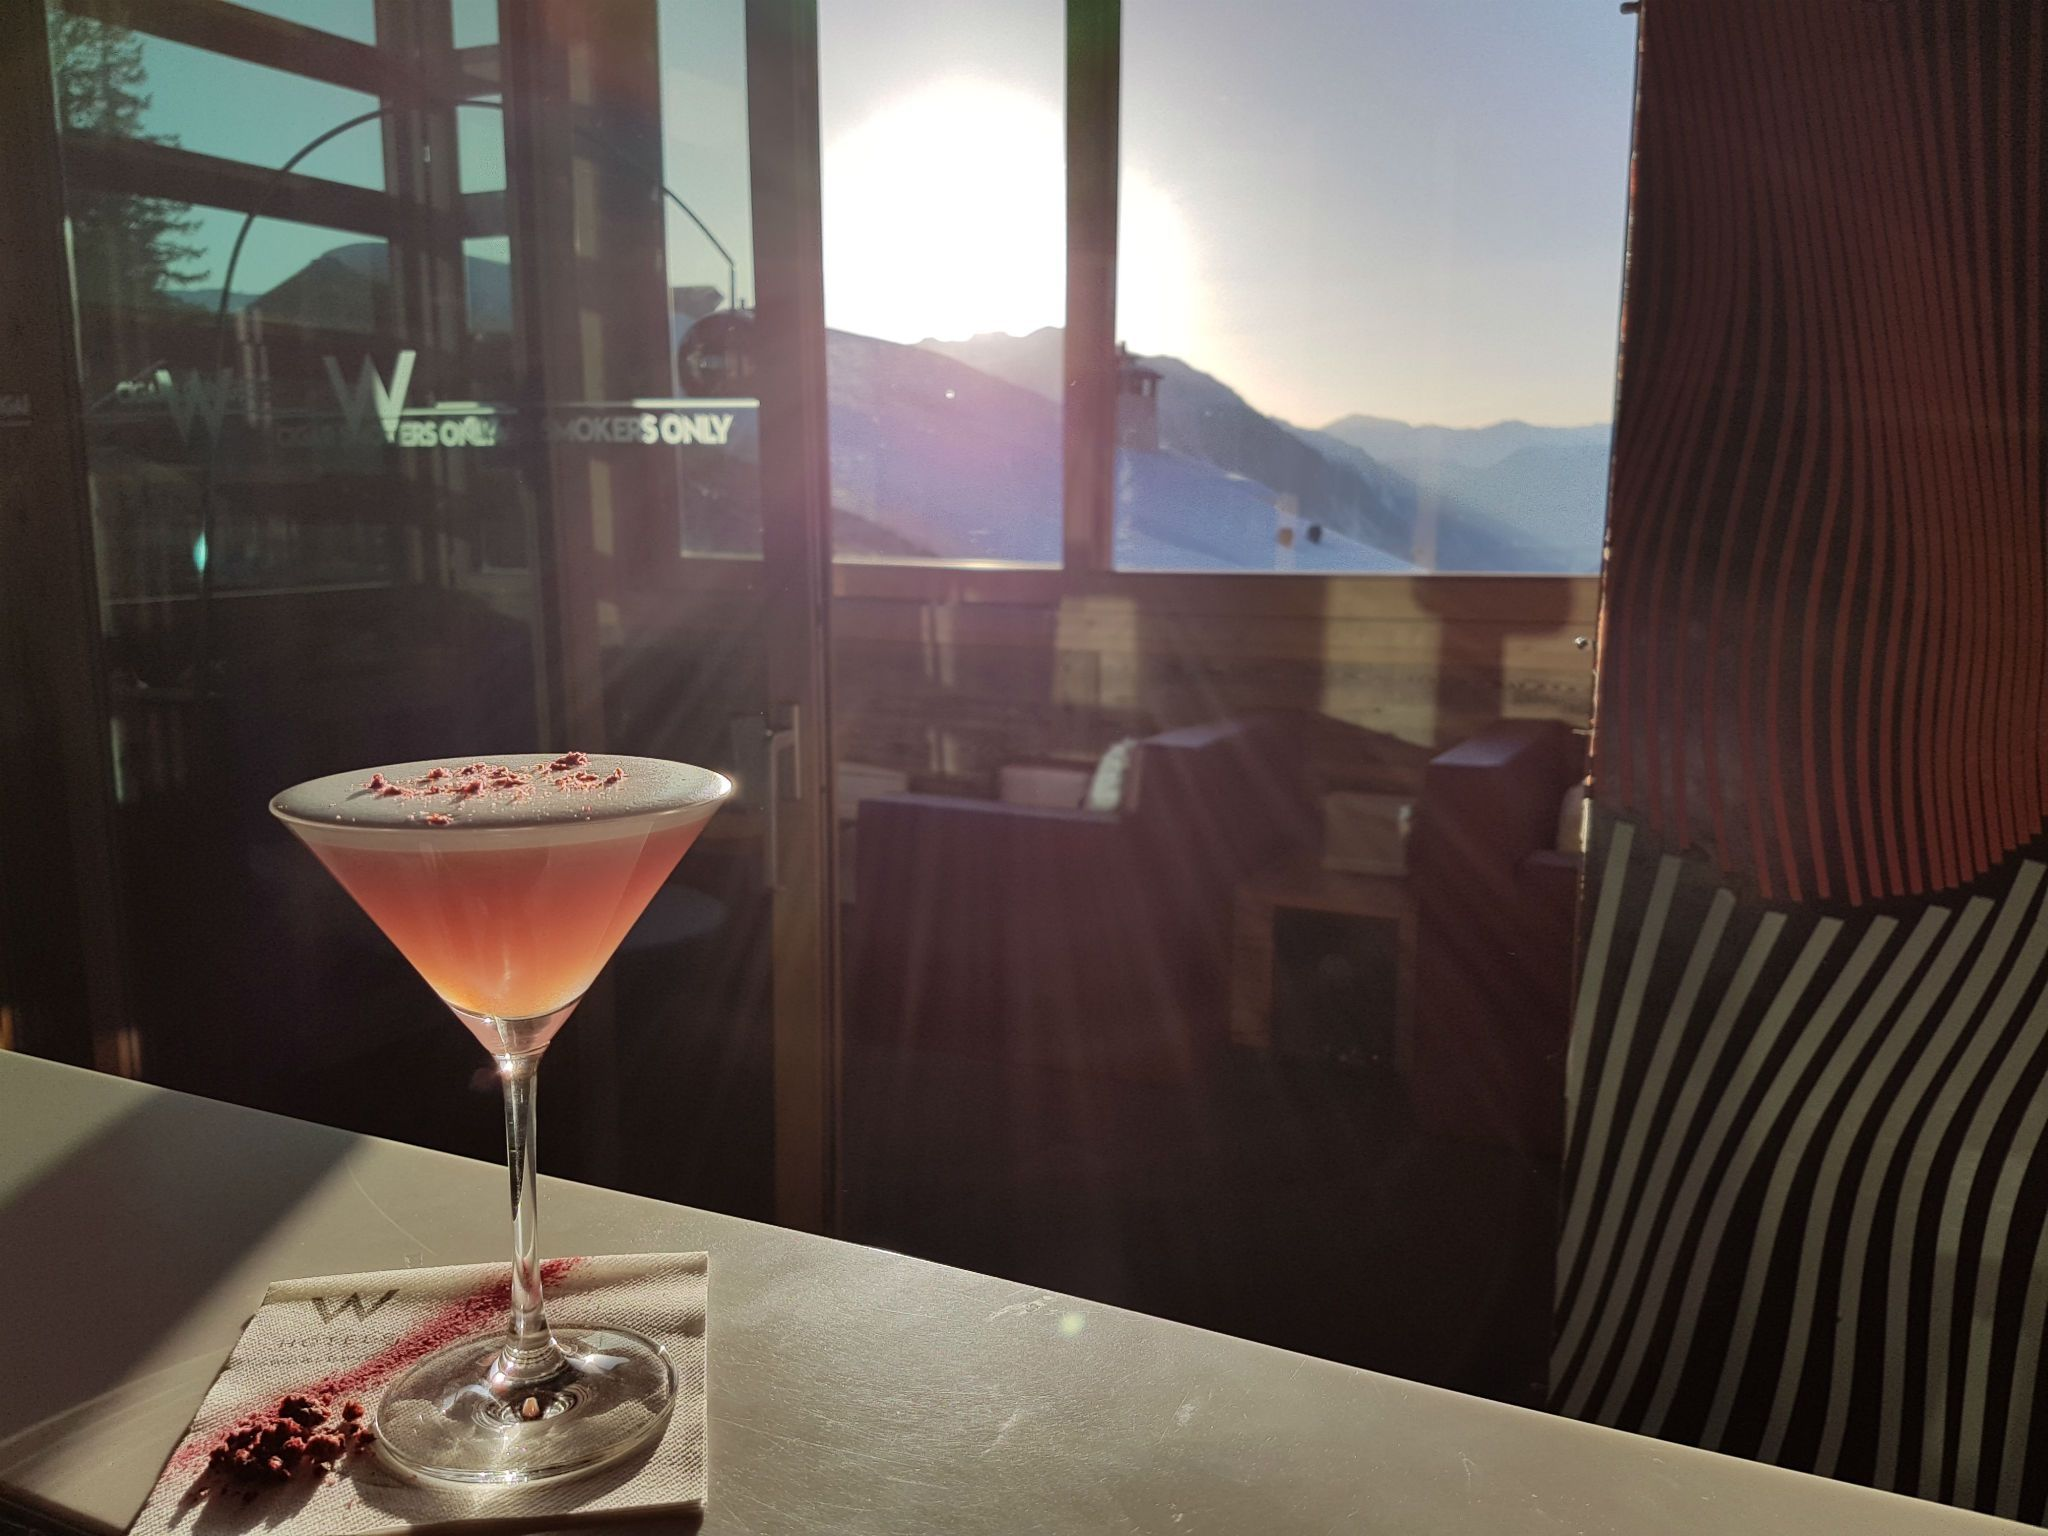 W Verbier Coctail with a view